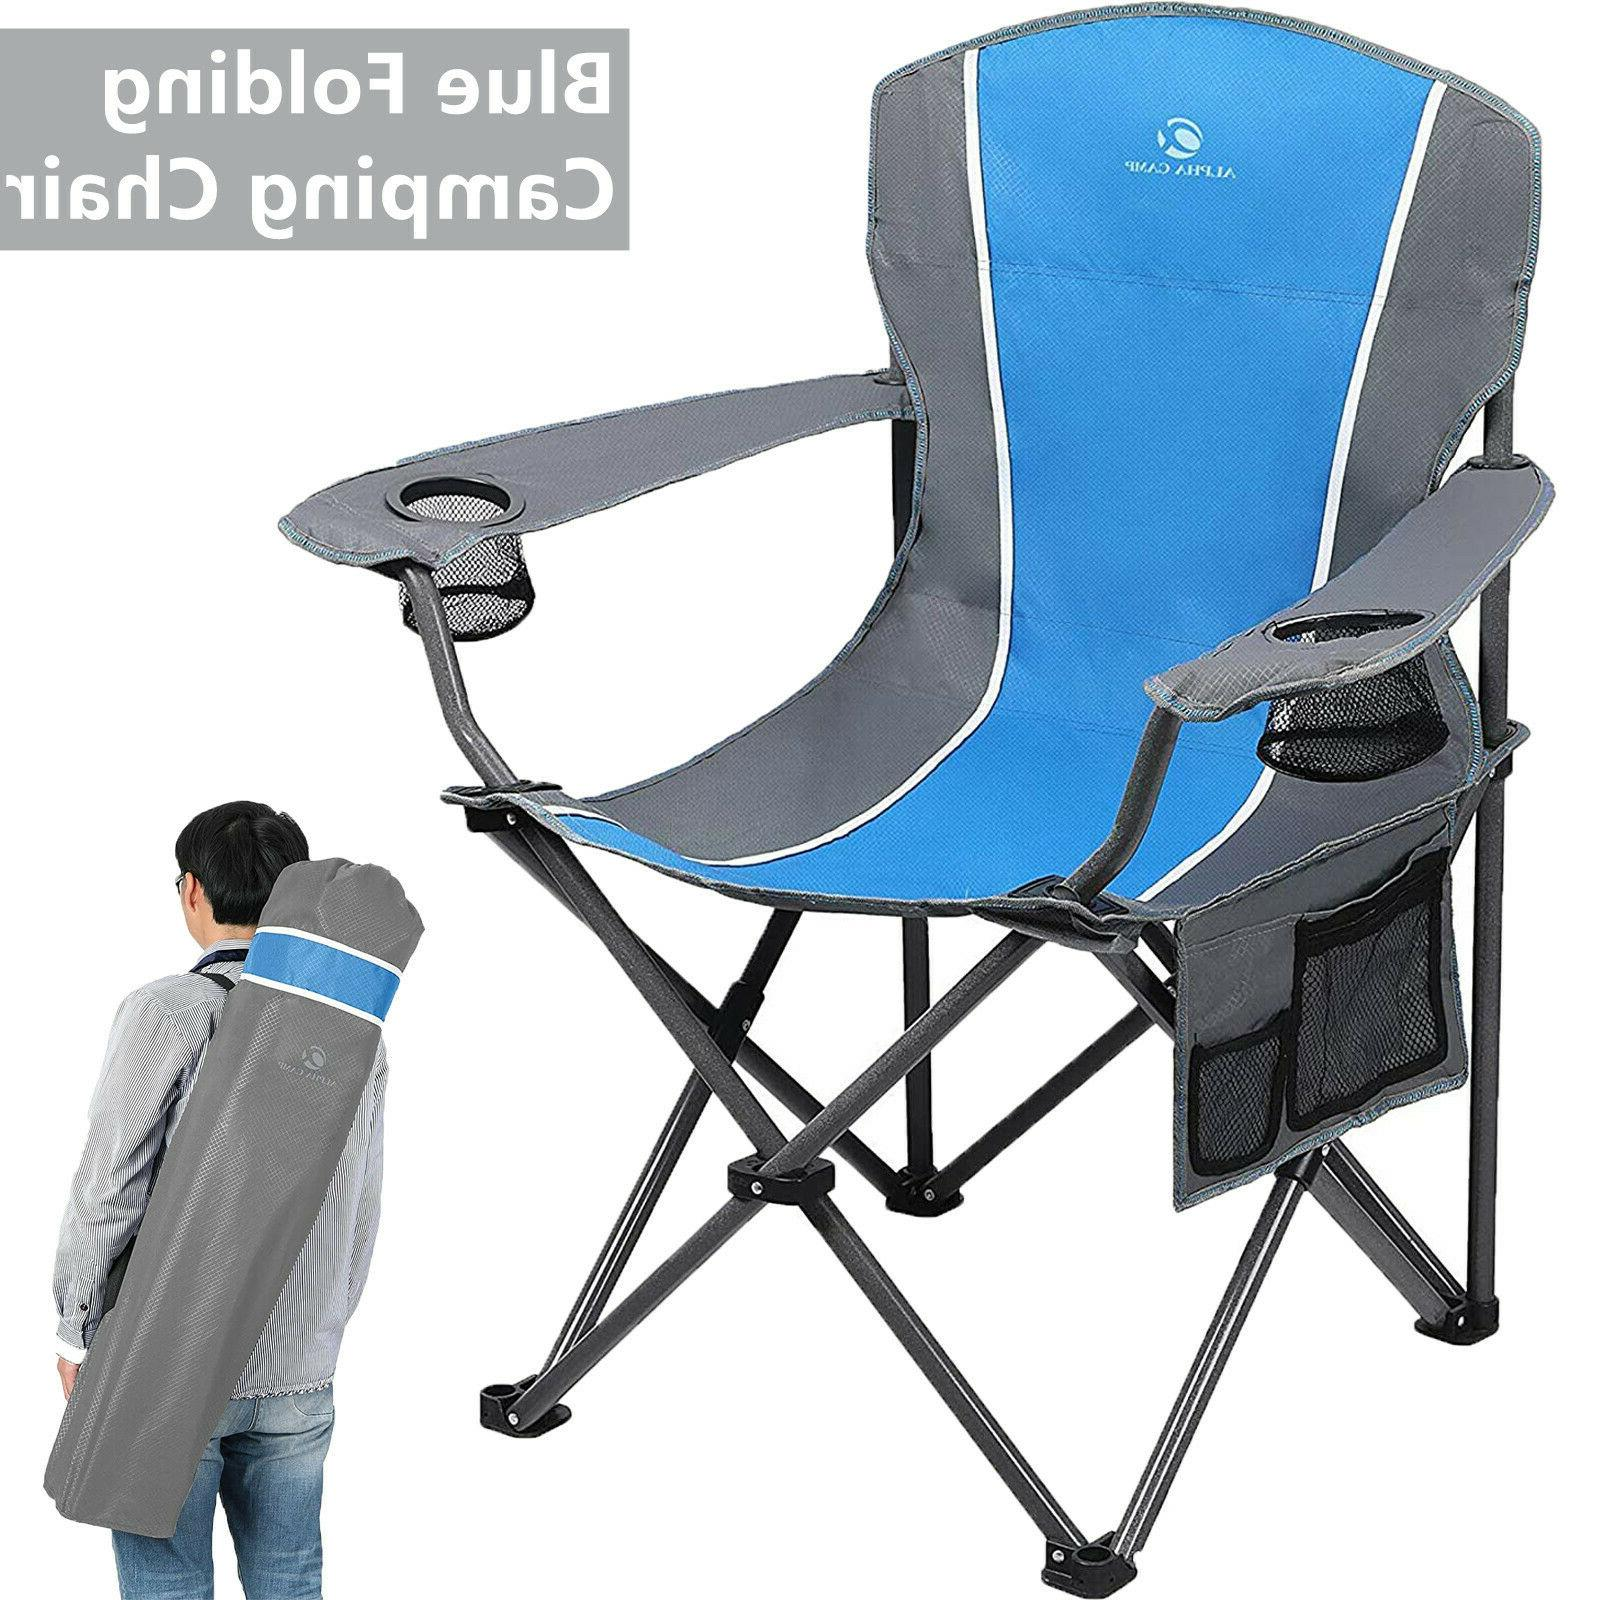 portable folding camping chair heavy duty outdoor